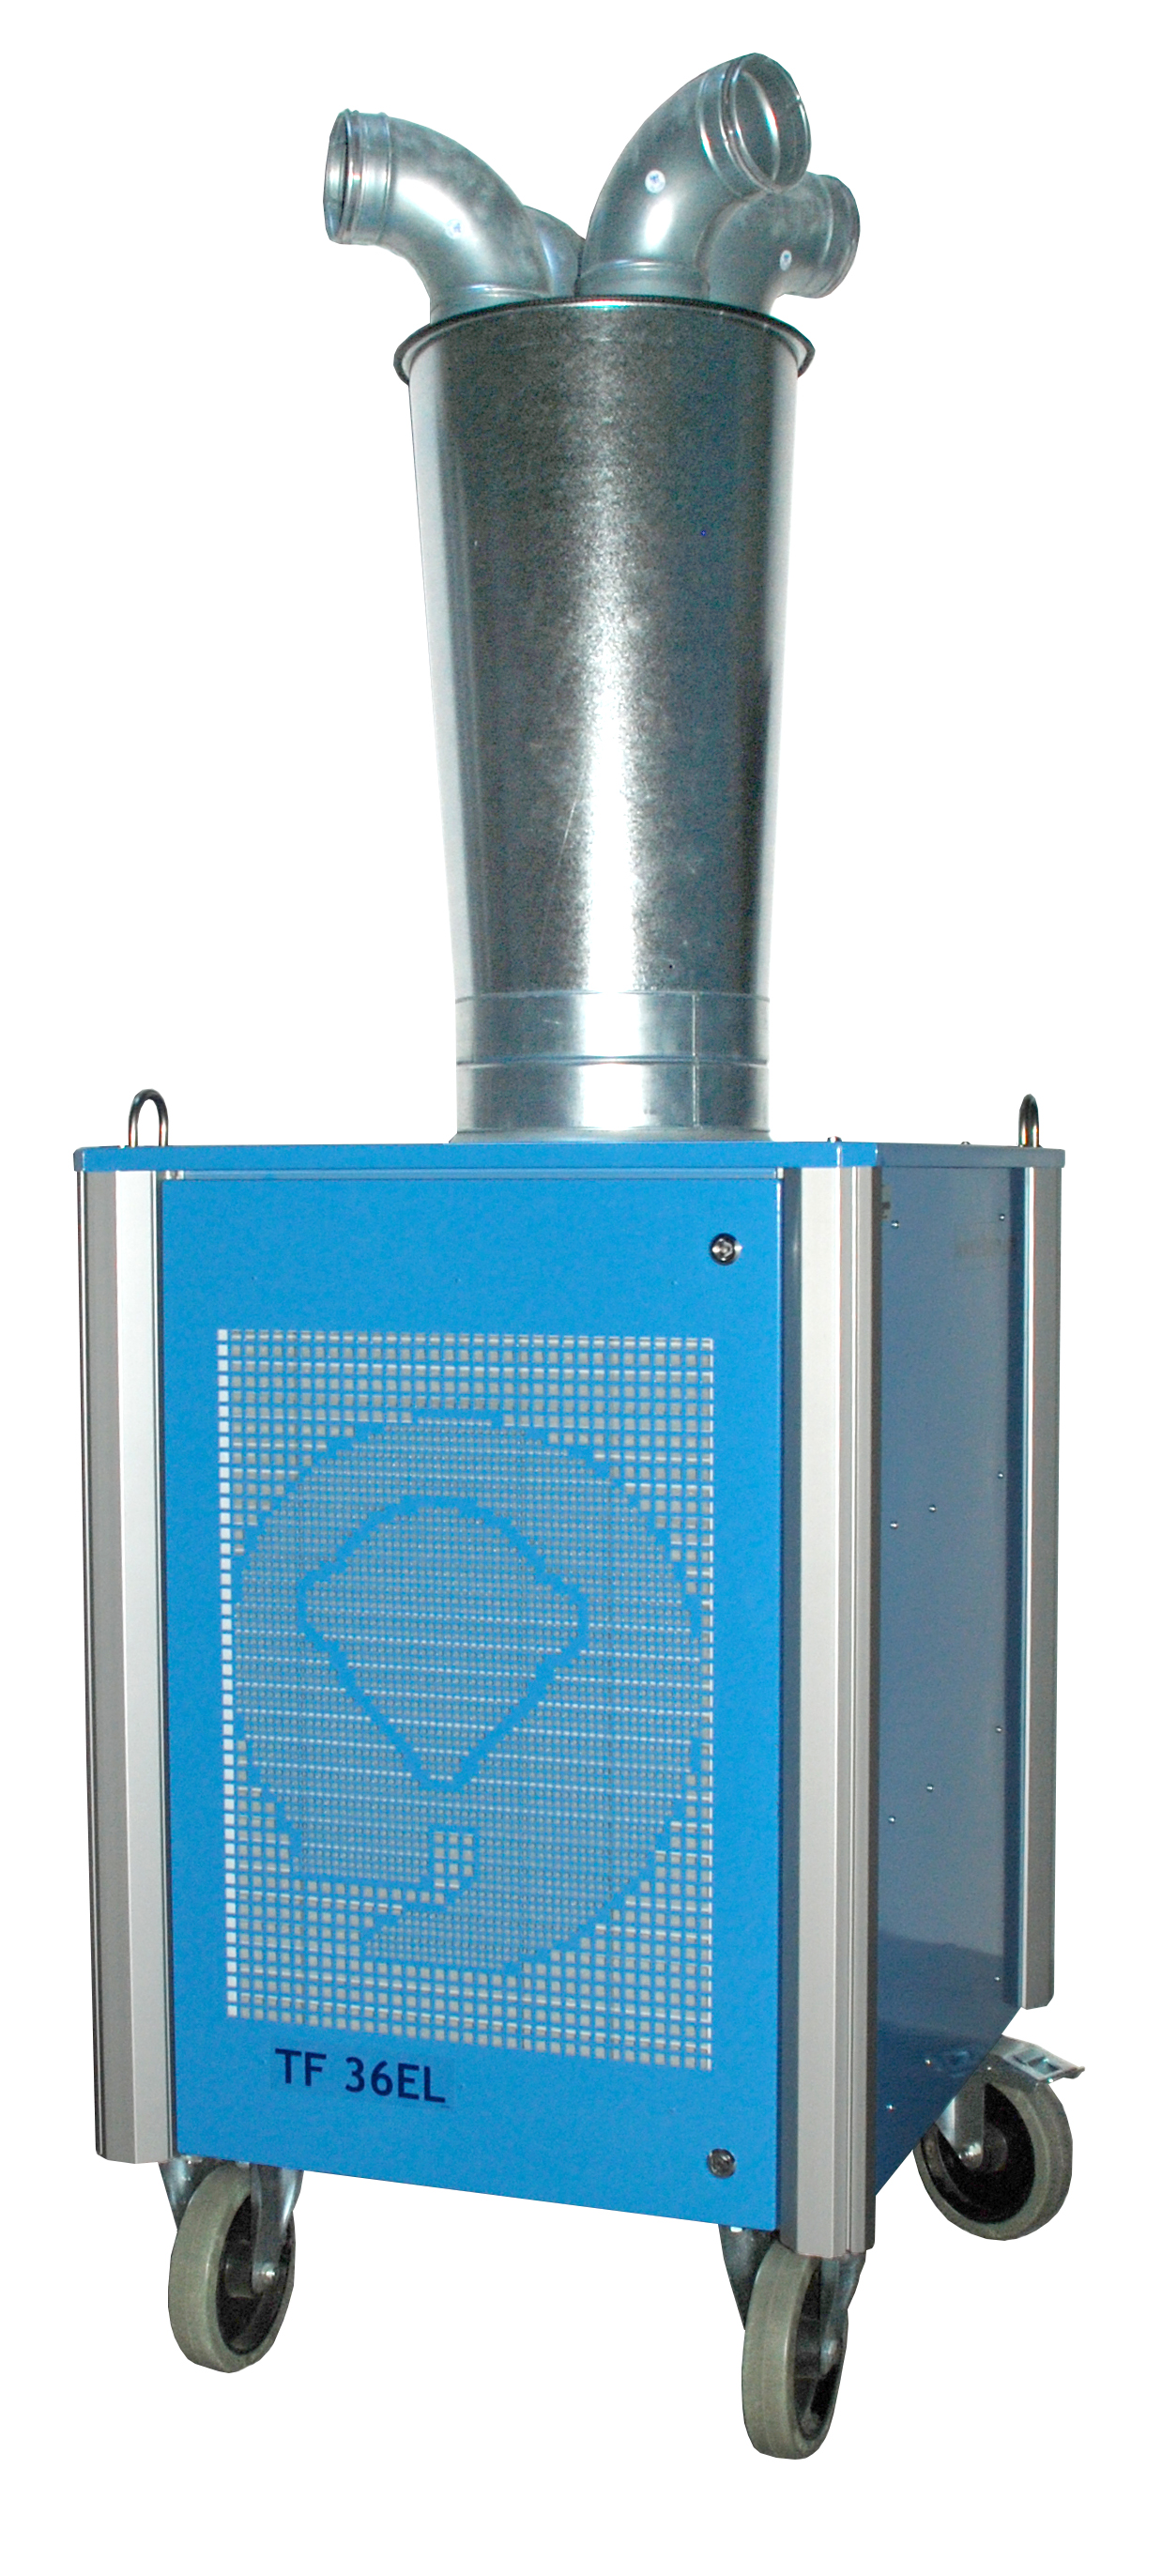 36KW Fan Heater